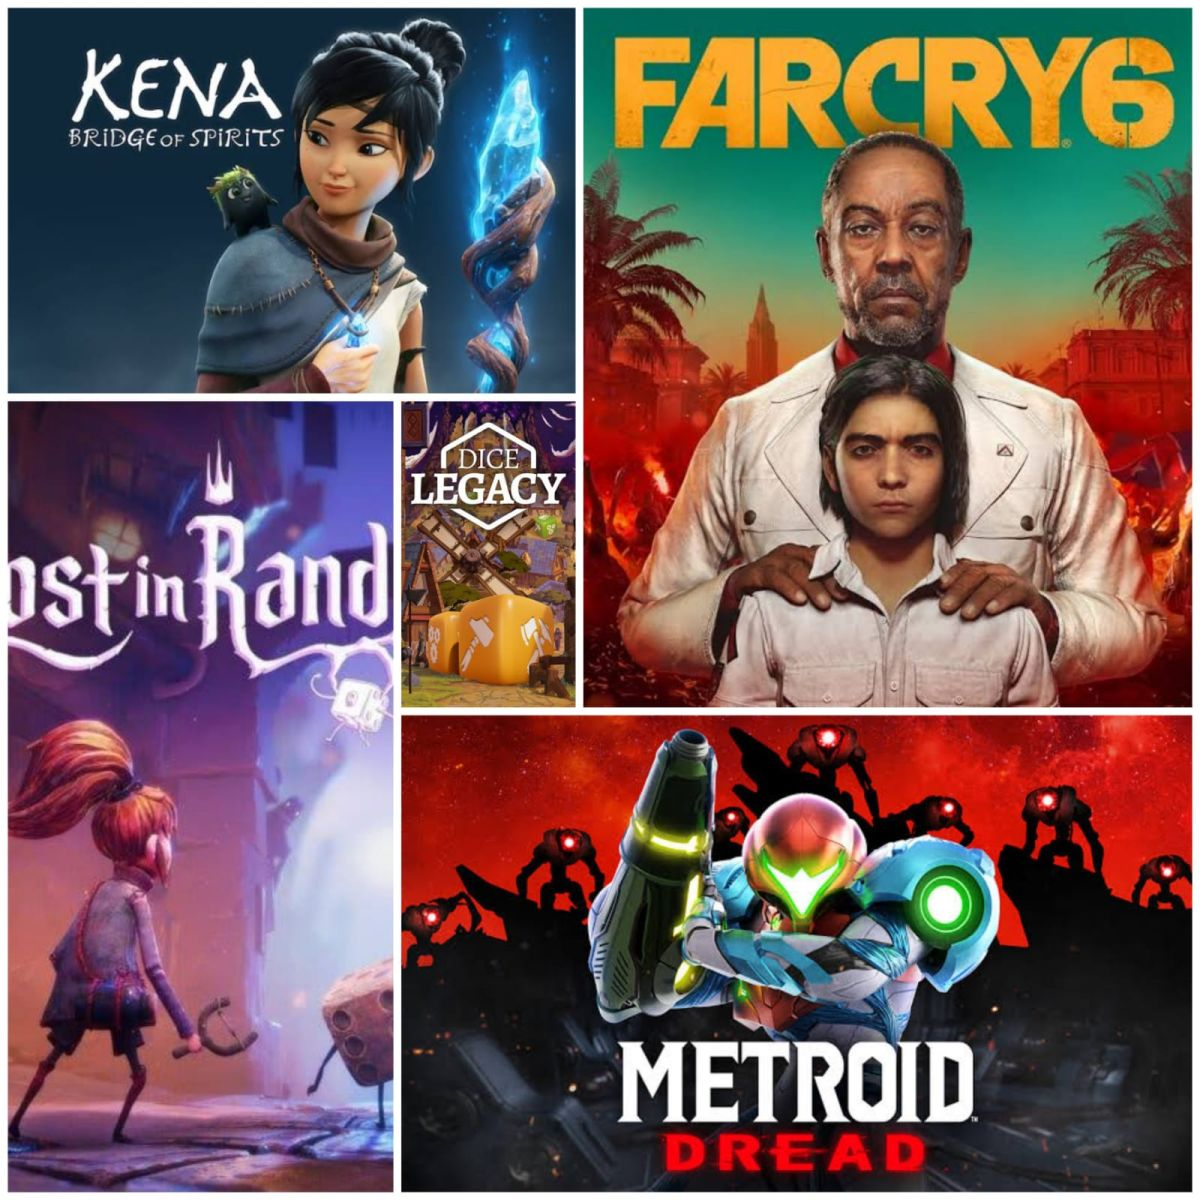 Review: Metroid Dread, Far Cry 6, Kena: Bridge of Spirits, Lost in Random and Dice Legacy